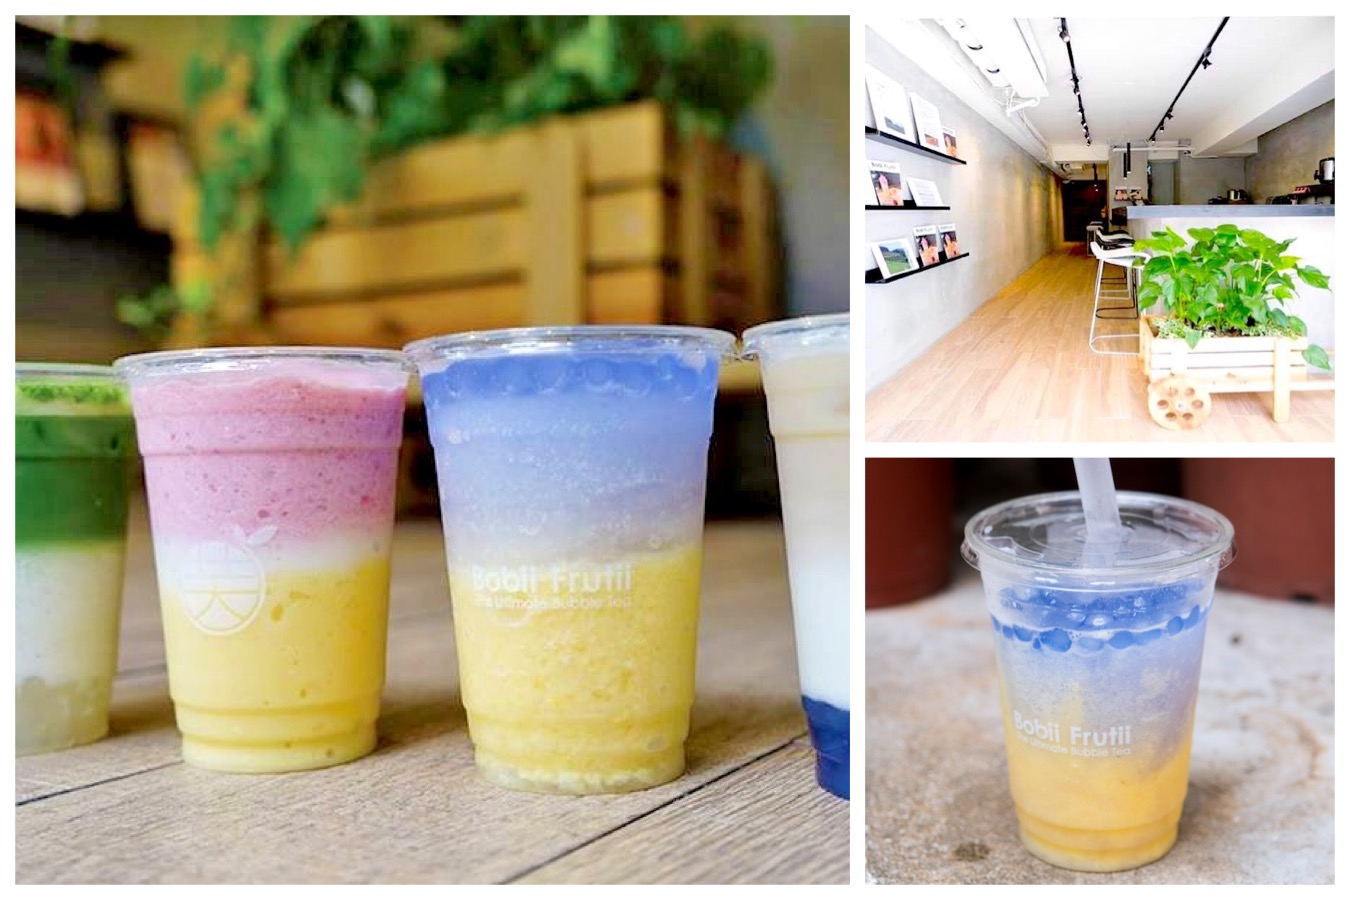 Bobii Frutii 珍珠水果特調 - Taiwan's Most Intagrammable Bubble Tea, Opening In Singapore At The Clementi Mall